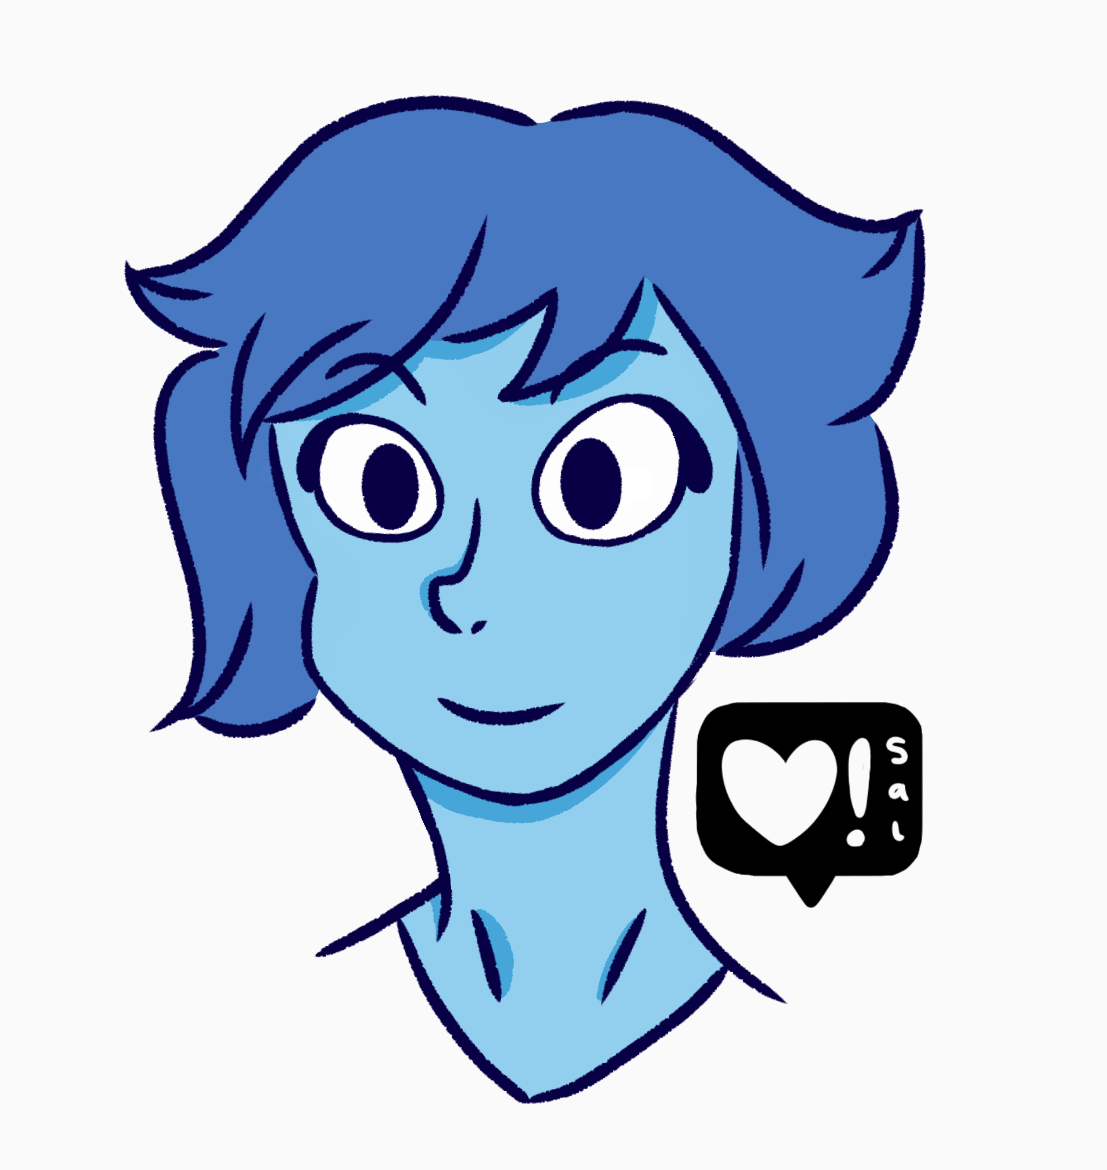 Here's a quick smiling Lapis Lazuli doodle per @integer-journalist 's request